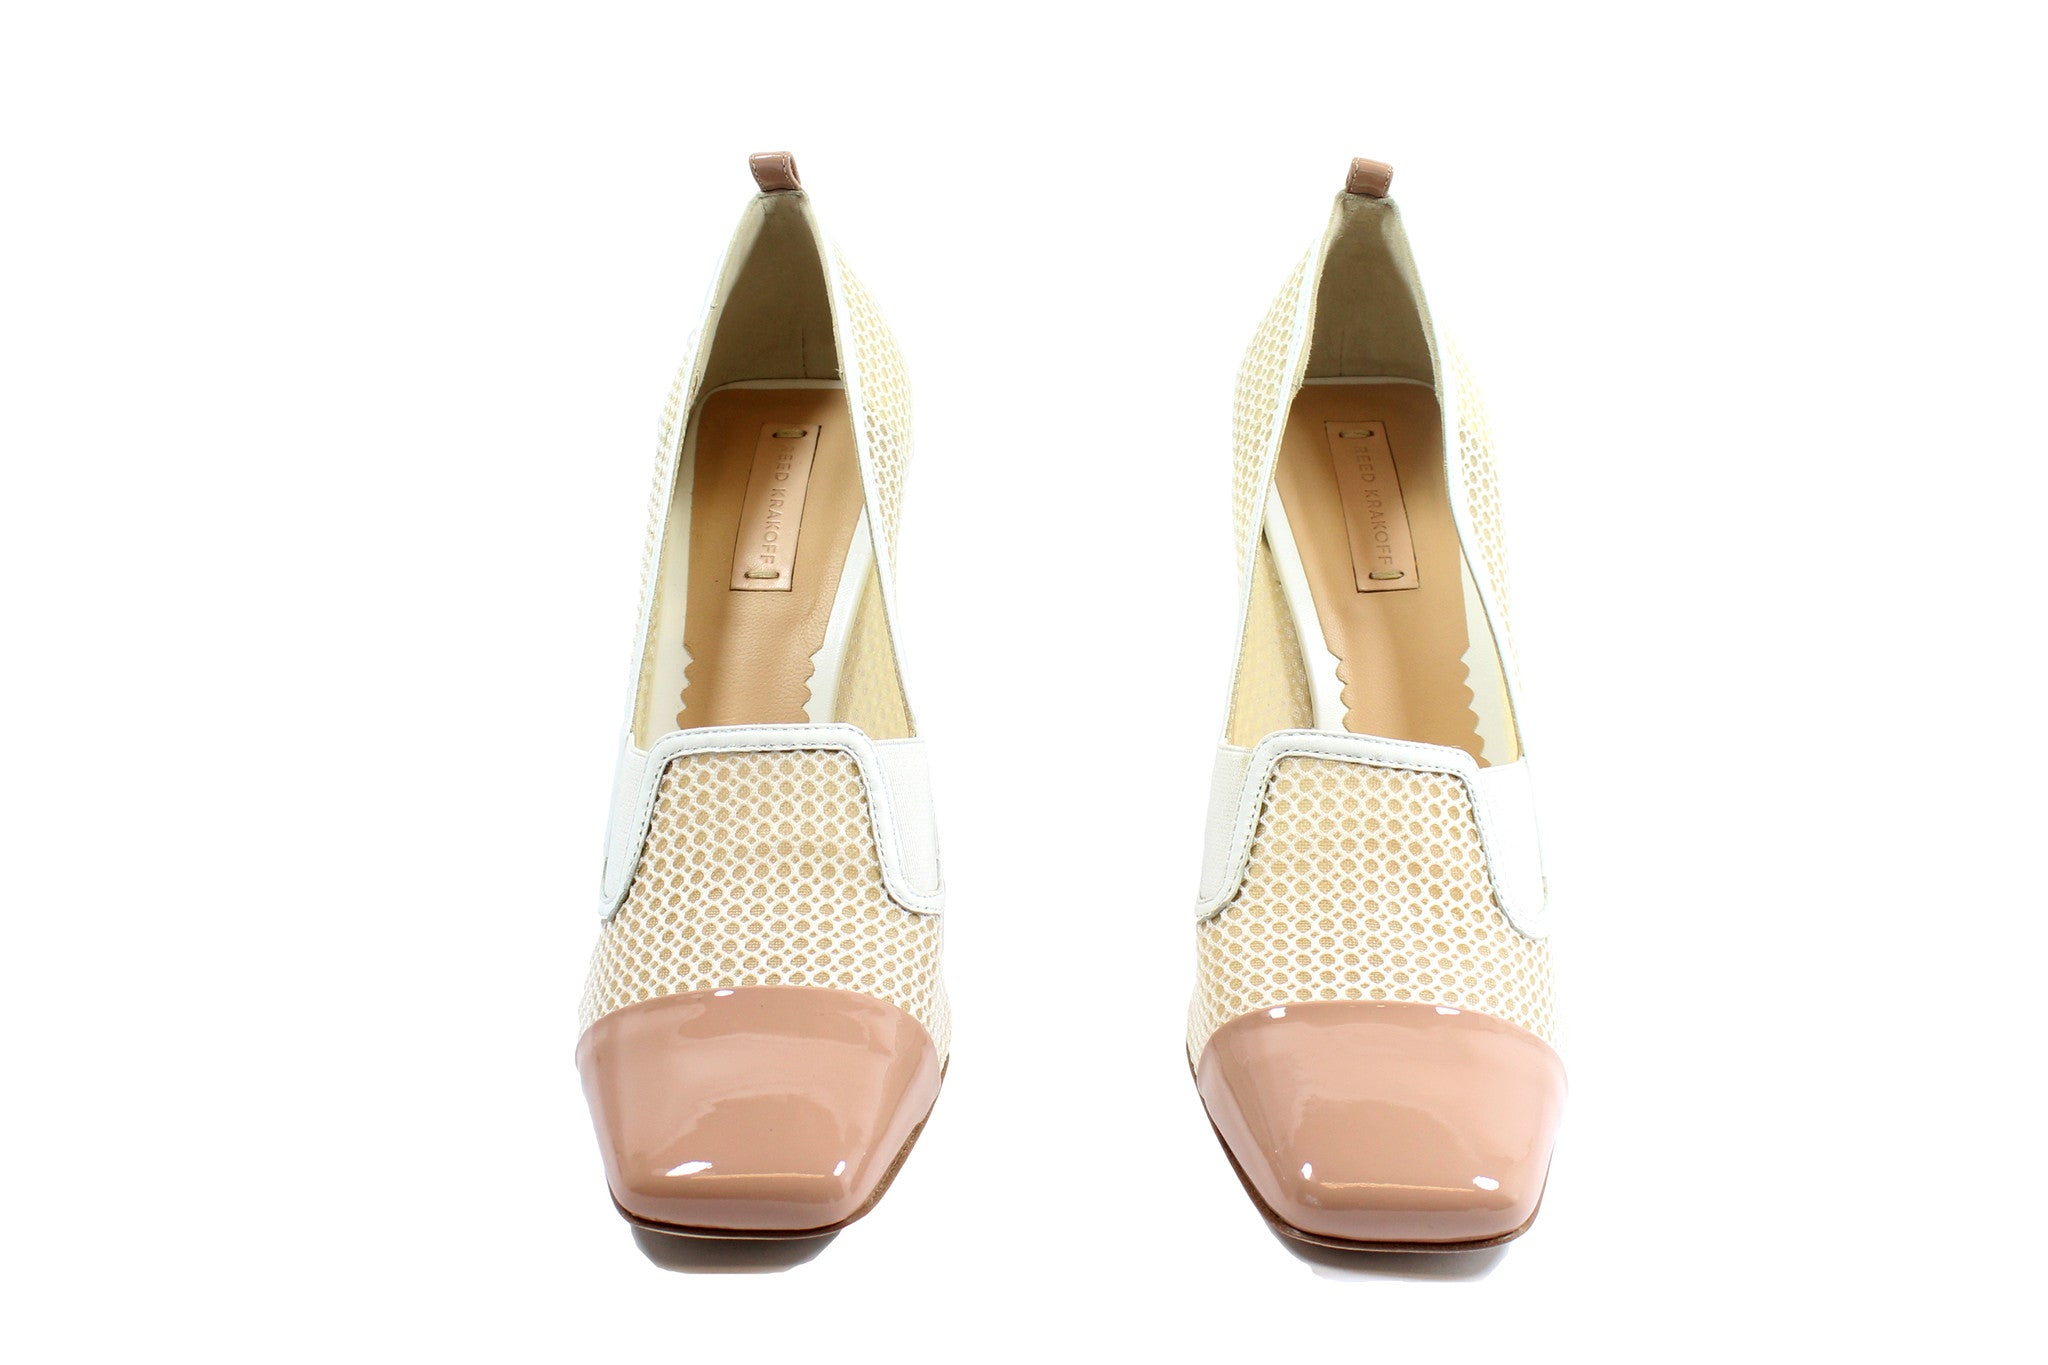 Reed Krakoff Mesh Atlas Nude and White Pumps (Size 38.5) - Encore Consignment - 4